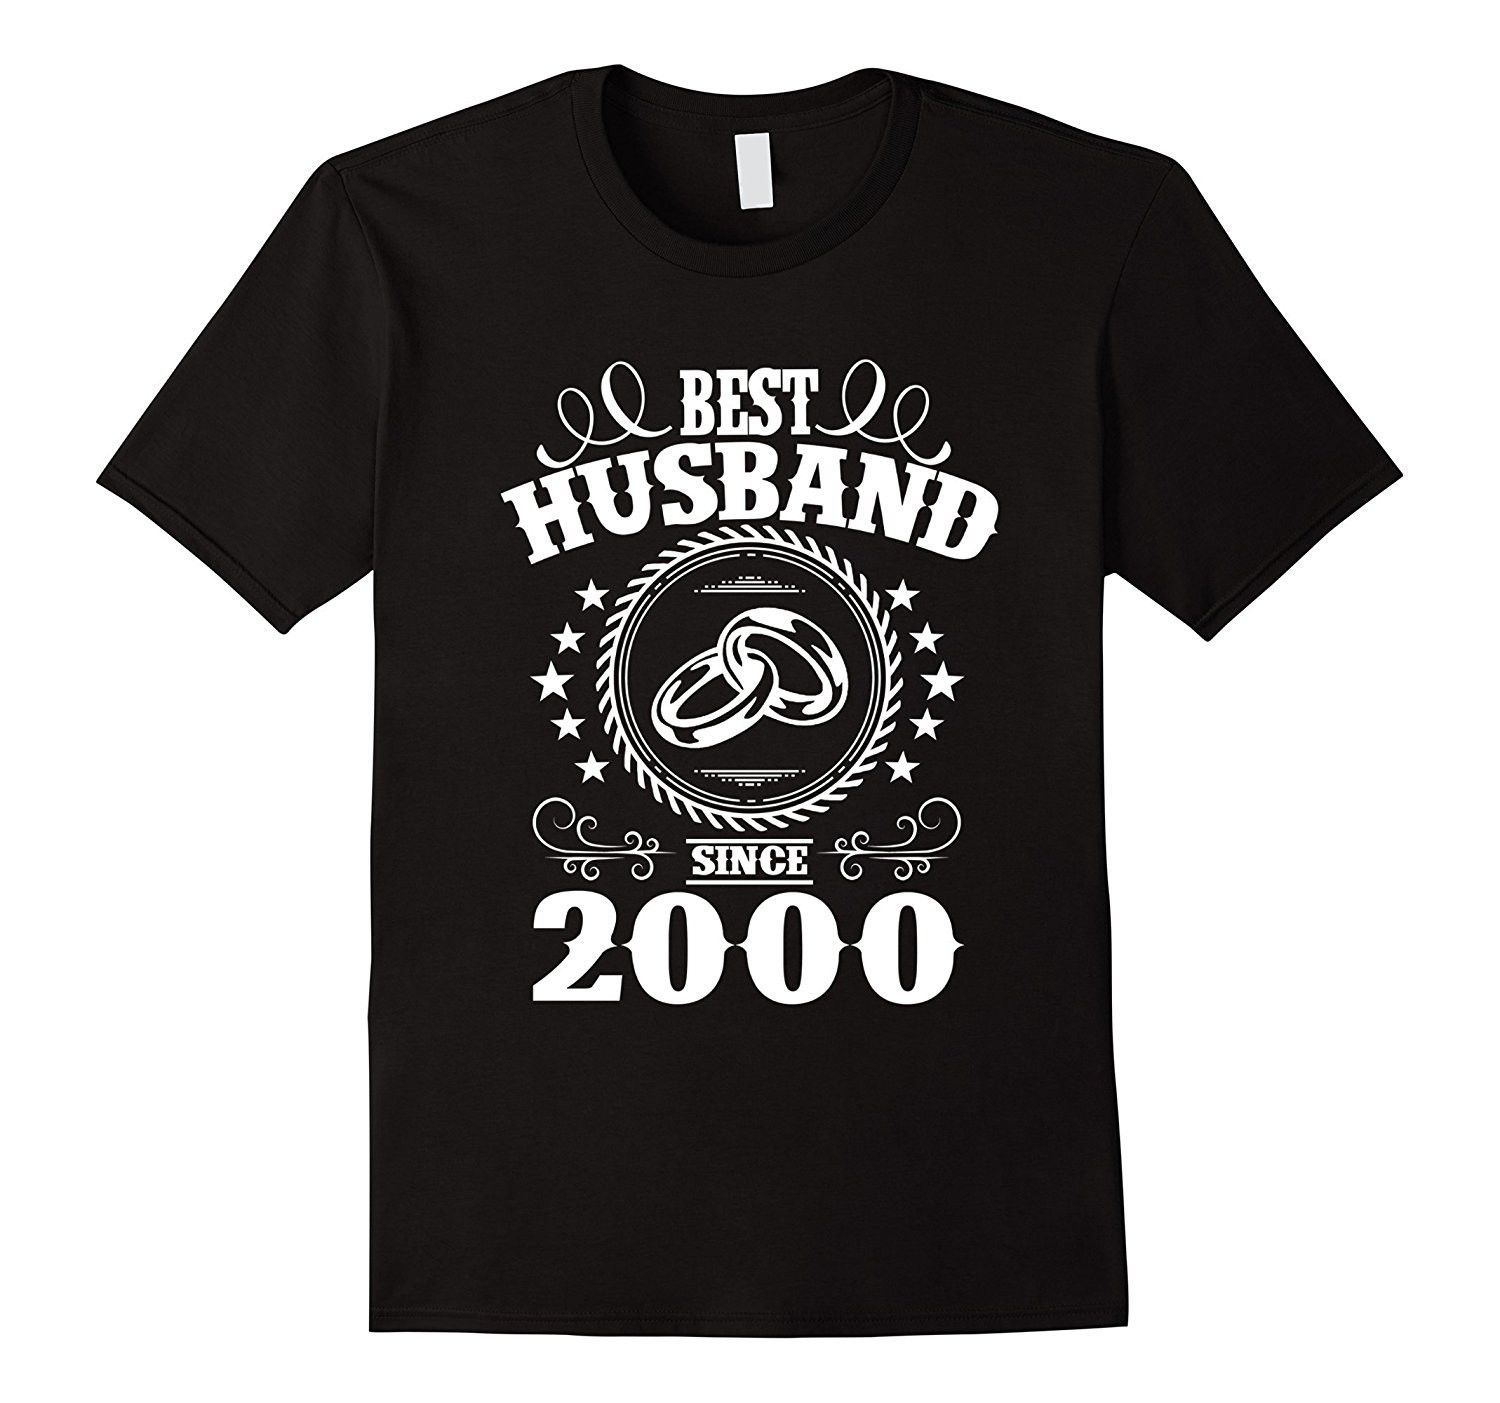 17th Wedding Anniversary TShirts For Husband From Wife